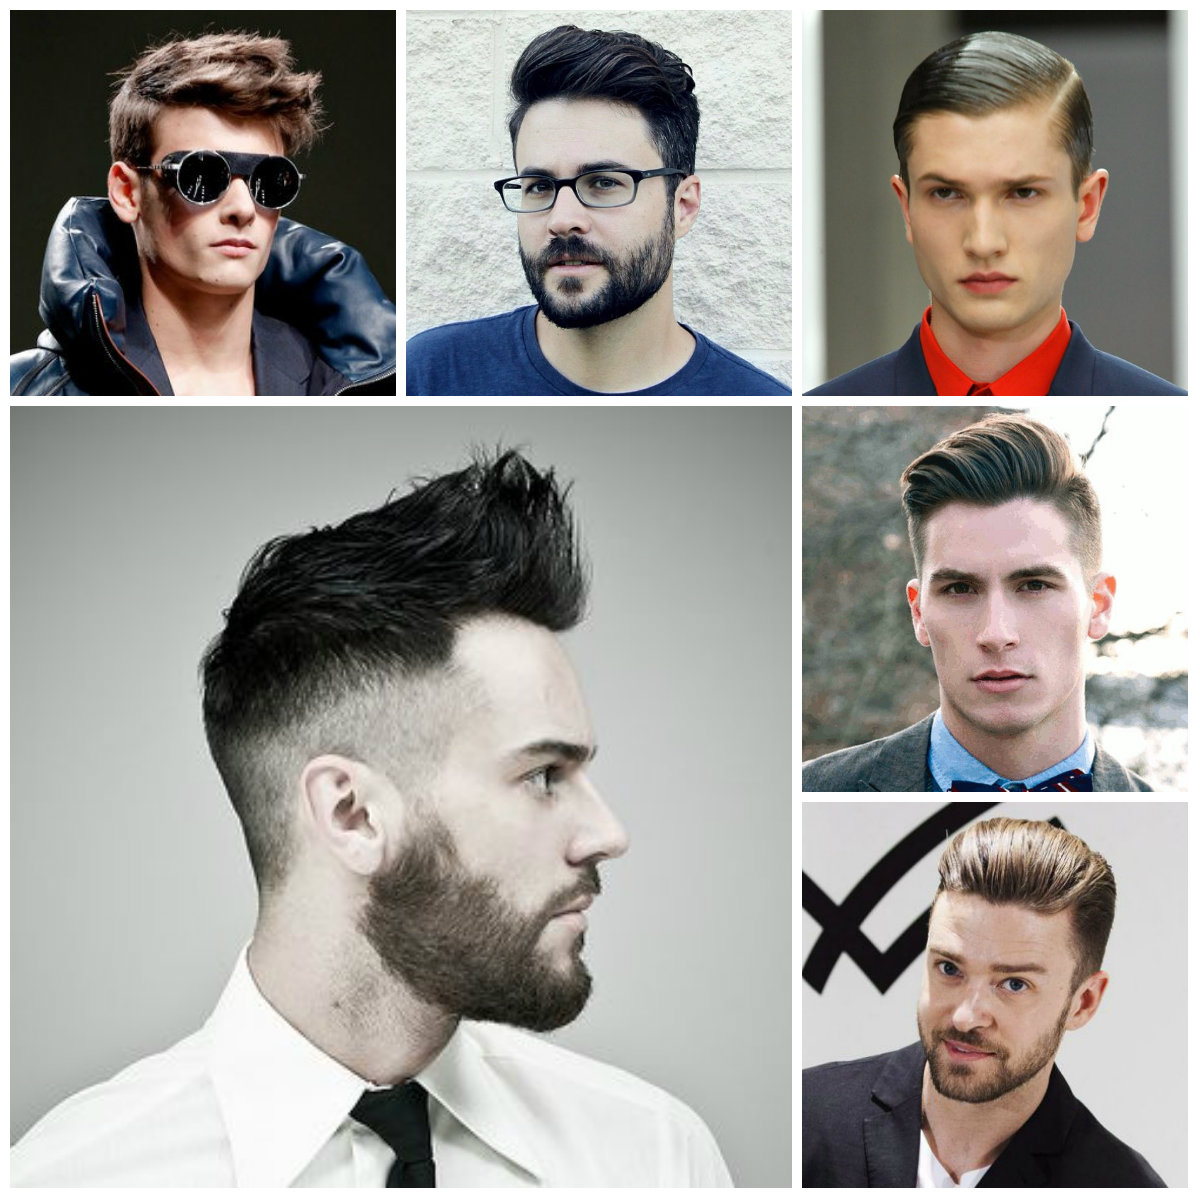 Men's hairstyle inspiration.